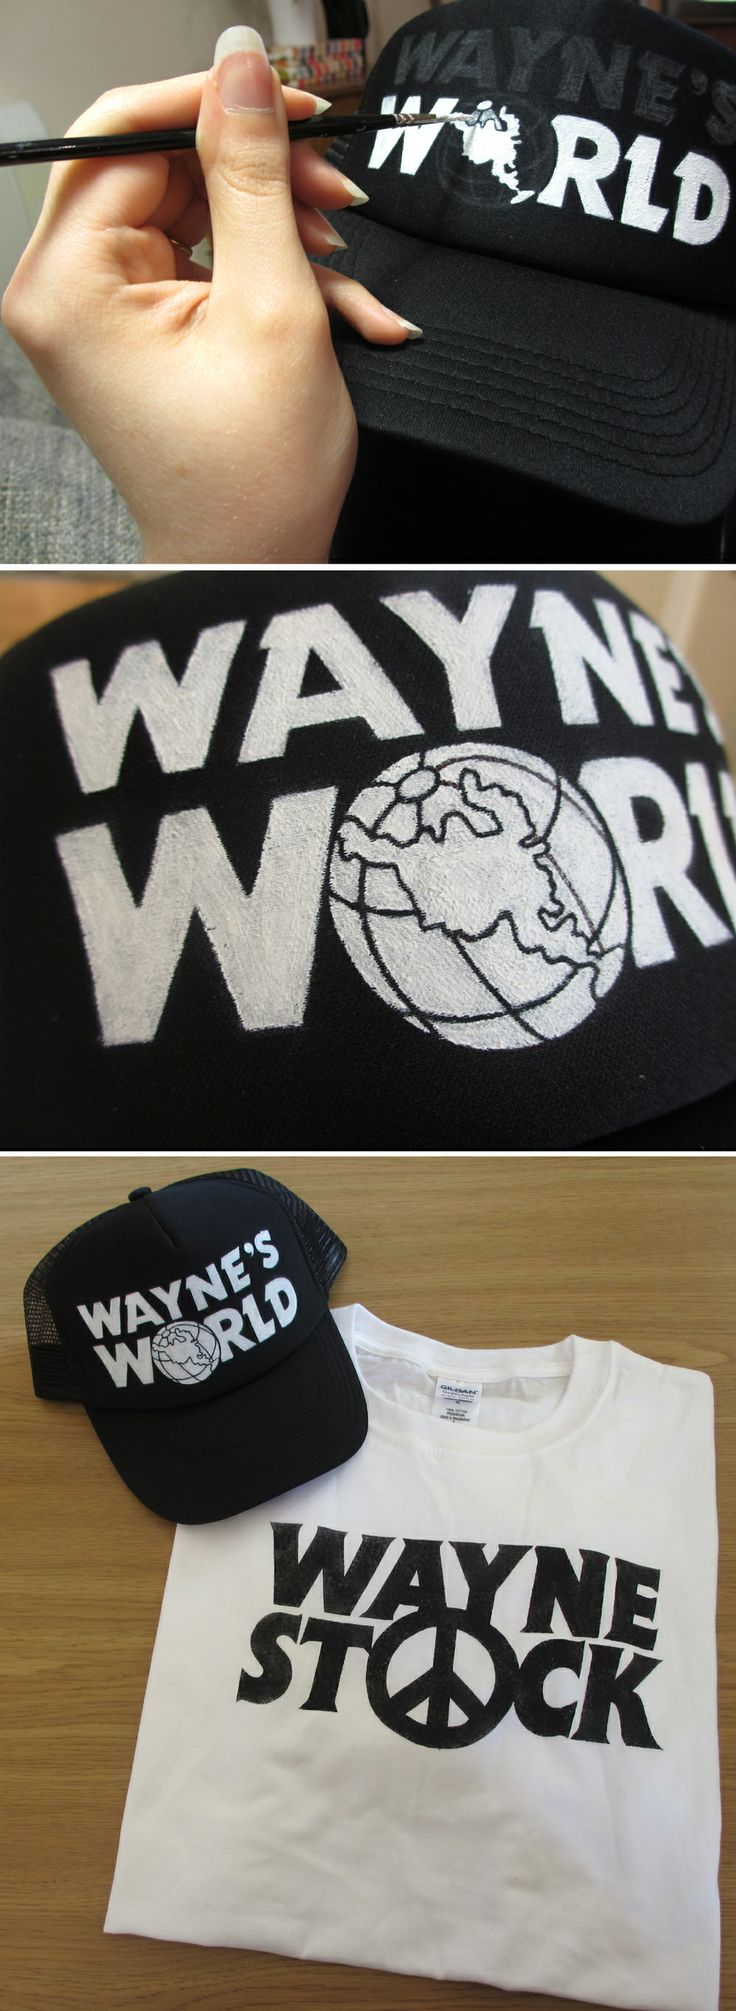 Wayne's World Cap #DIY #costume #fancydress